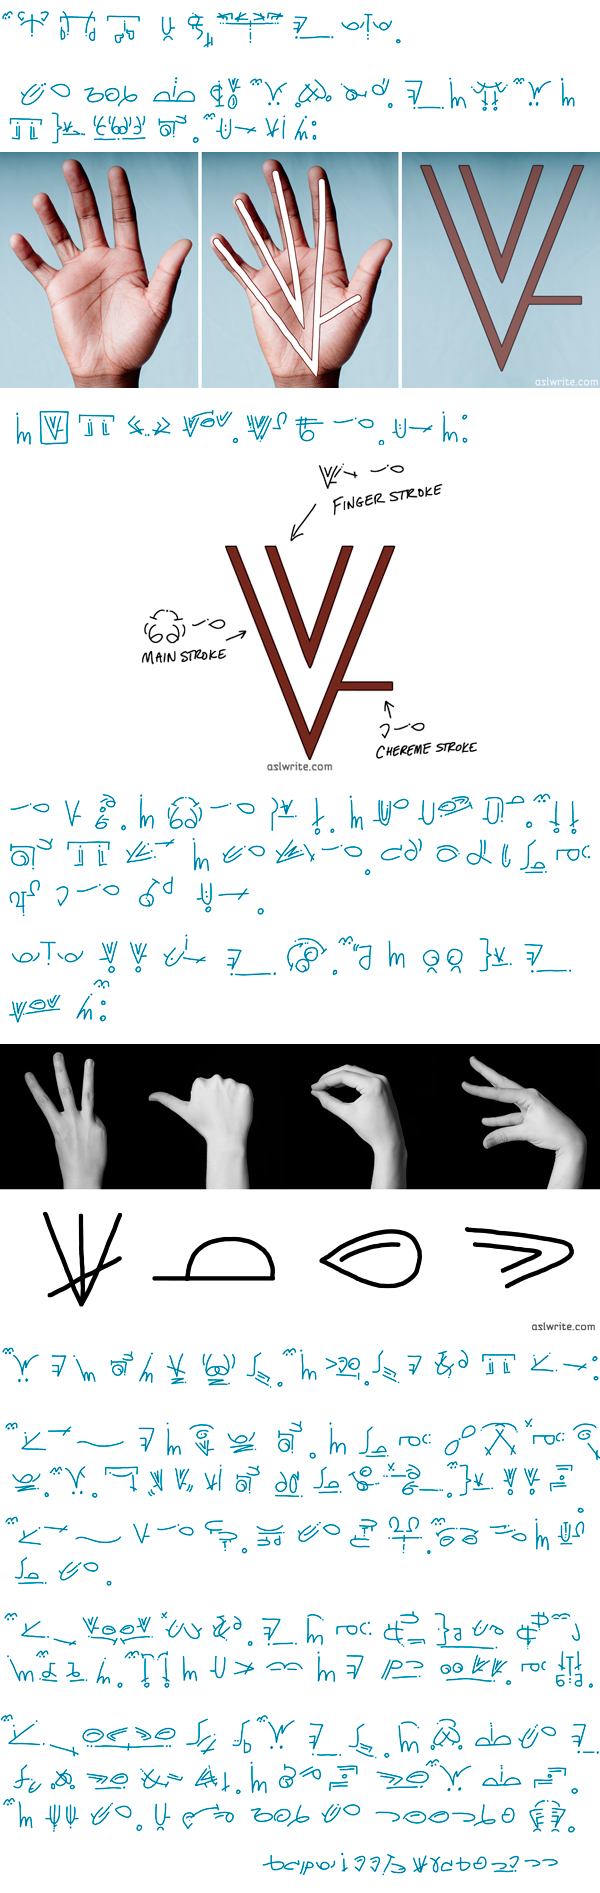 asltextmay2014 Whats The Secret To ASL Digits?